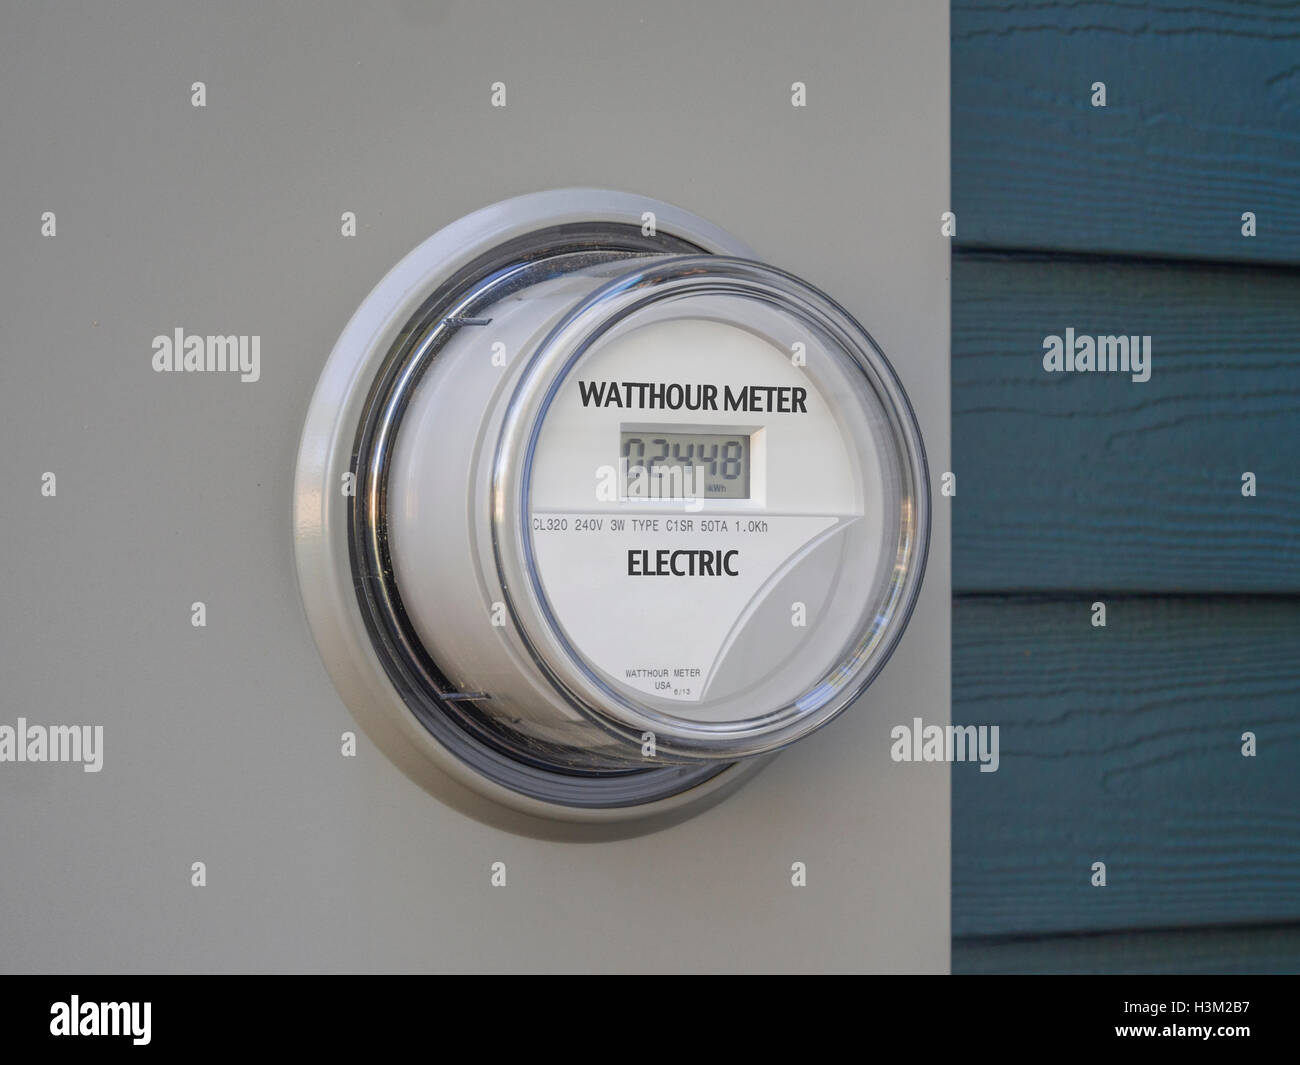 House electricity meter - Stock Image